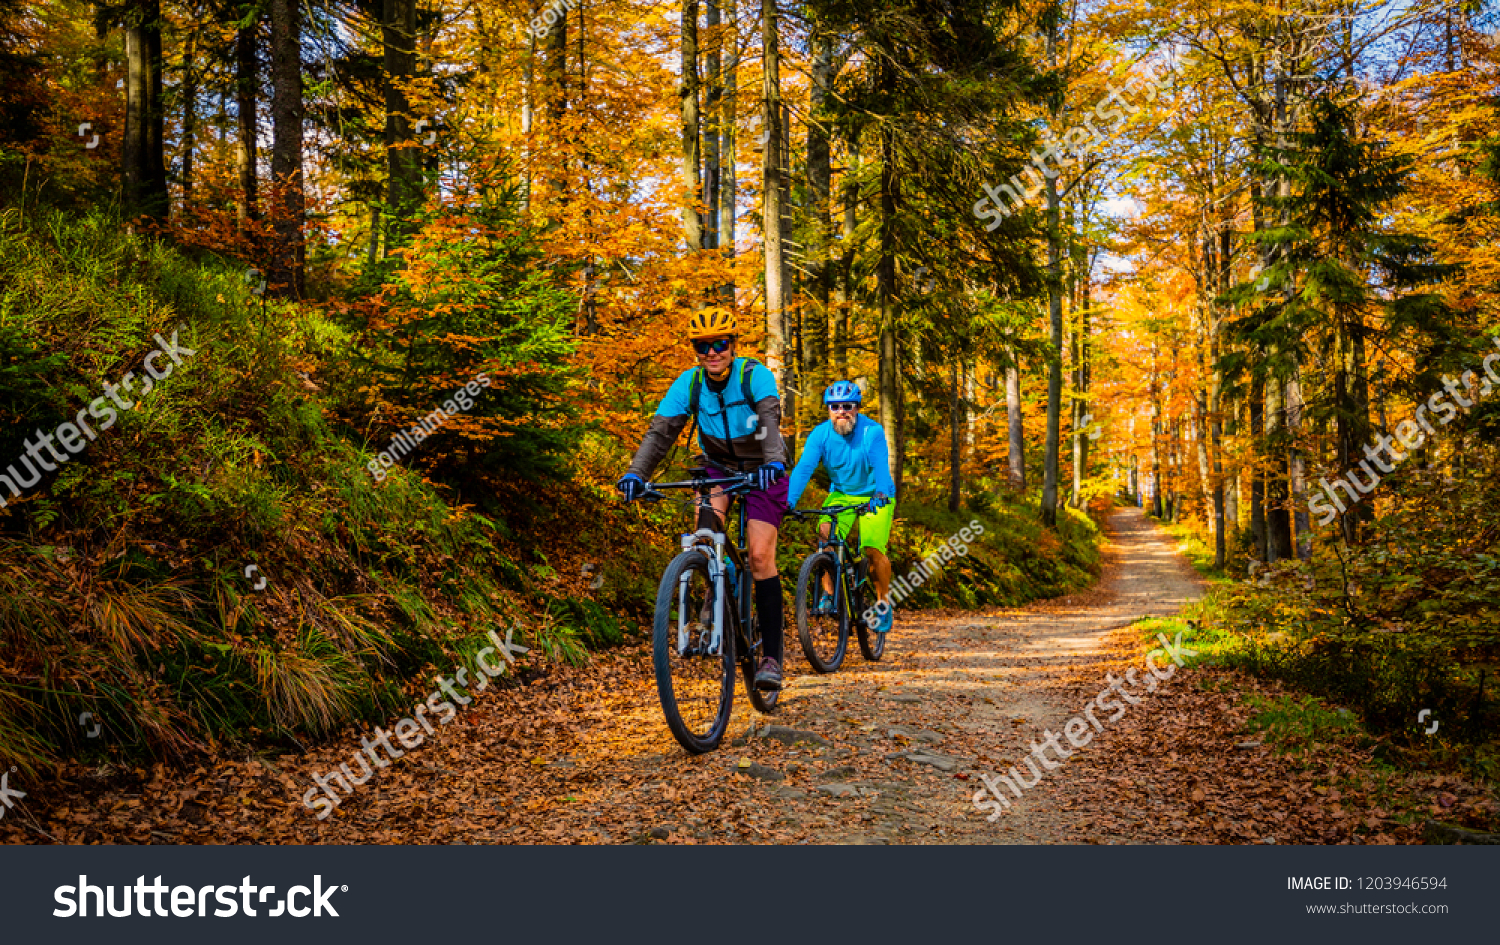 Cycling, mountain biker couple on cycle trail in autumn forest. Mountain biking in autumn landscape forest. Man and woman cycling MTB flow uphill trail. #1203946594